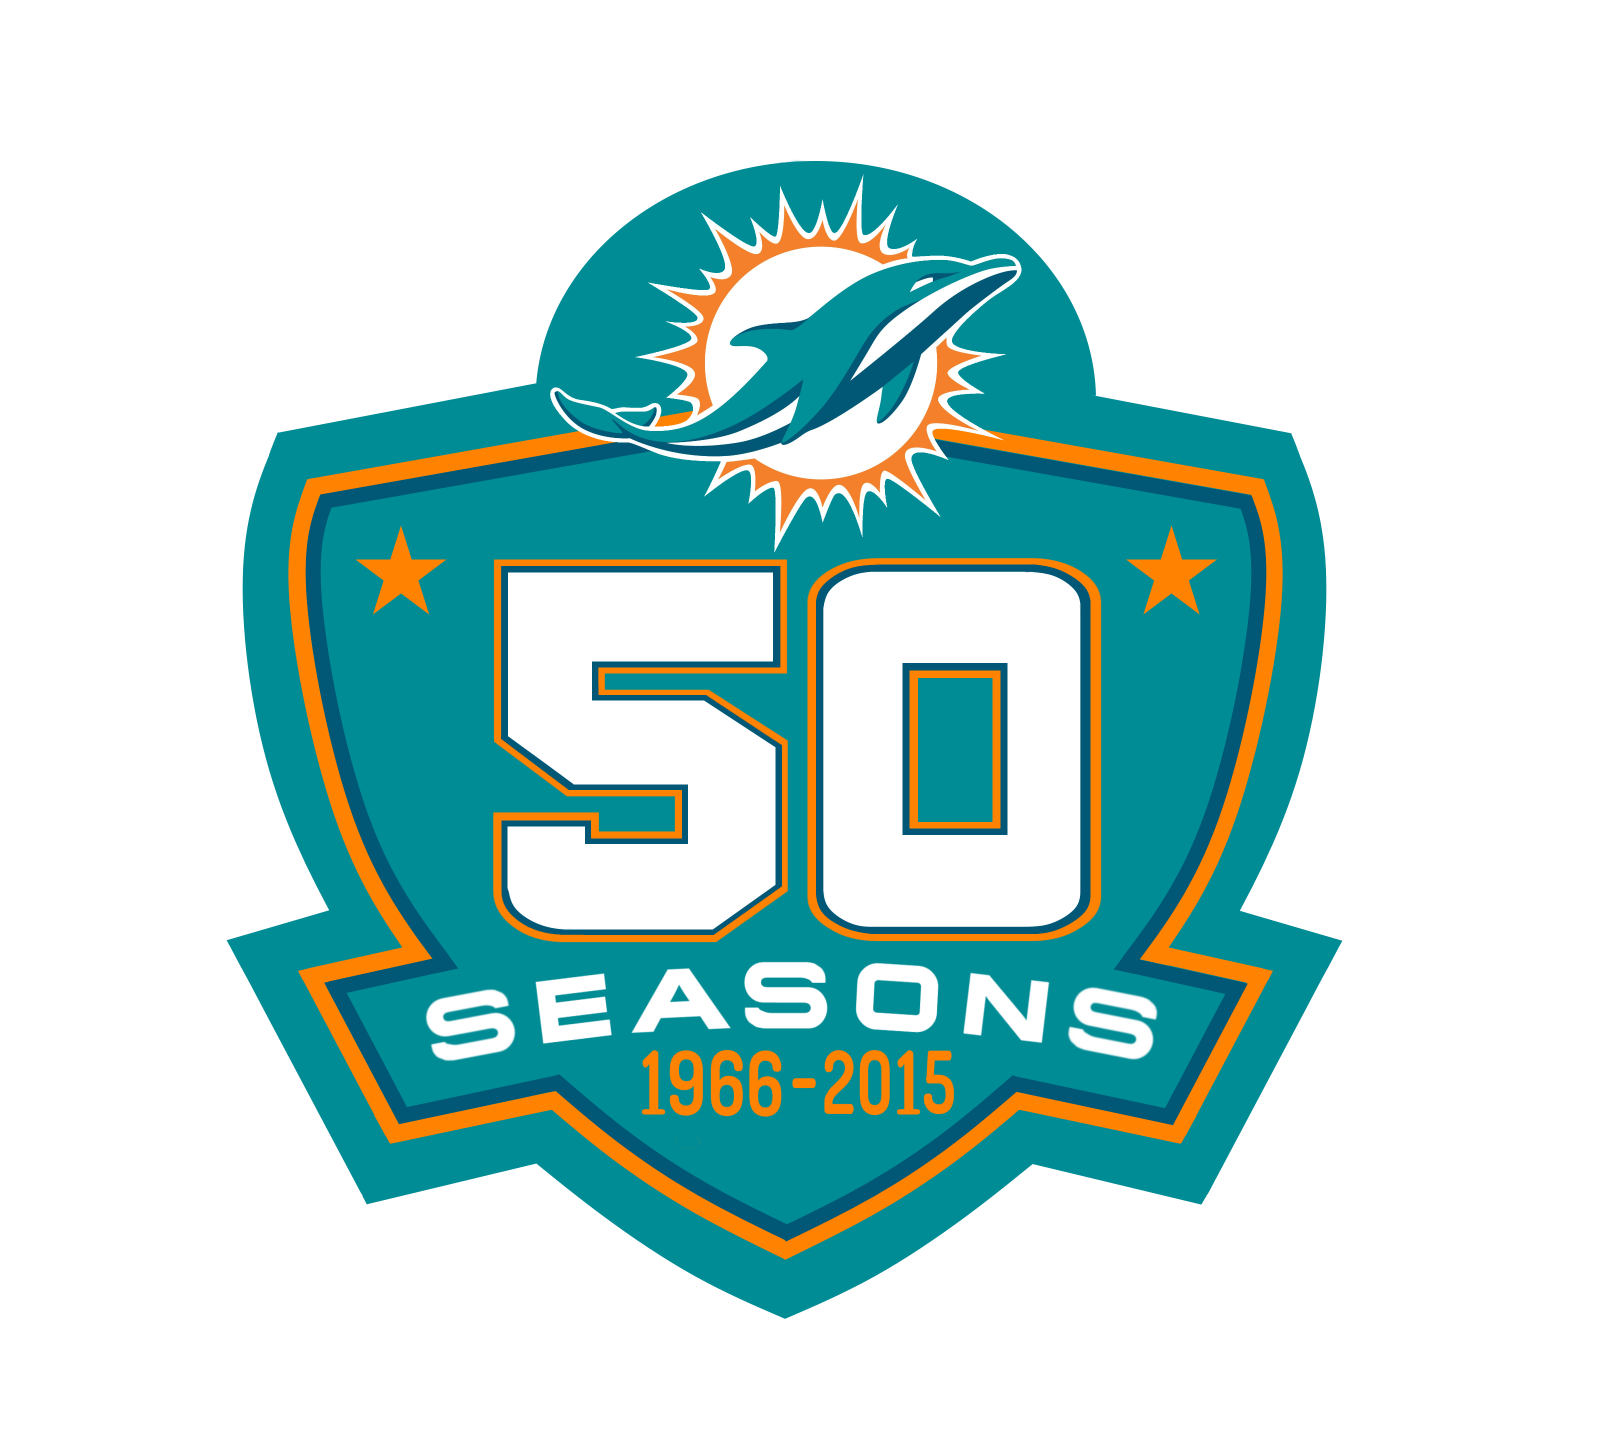 Miami dolphins logo png. Seasons patch trace concepts